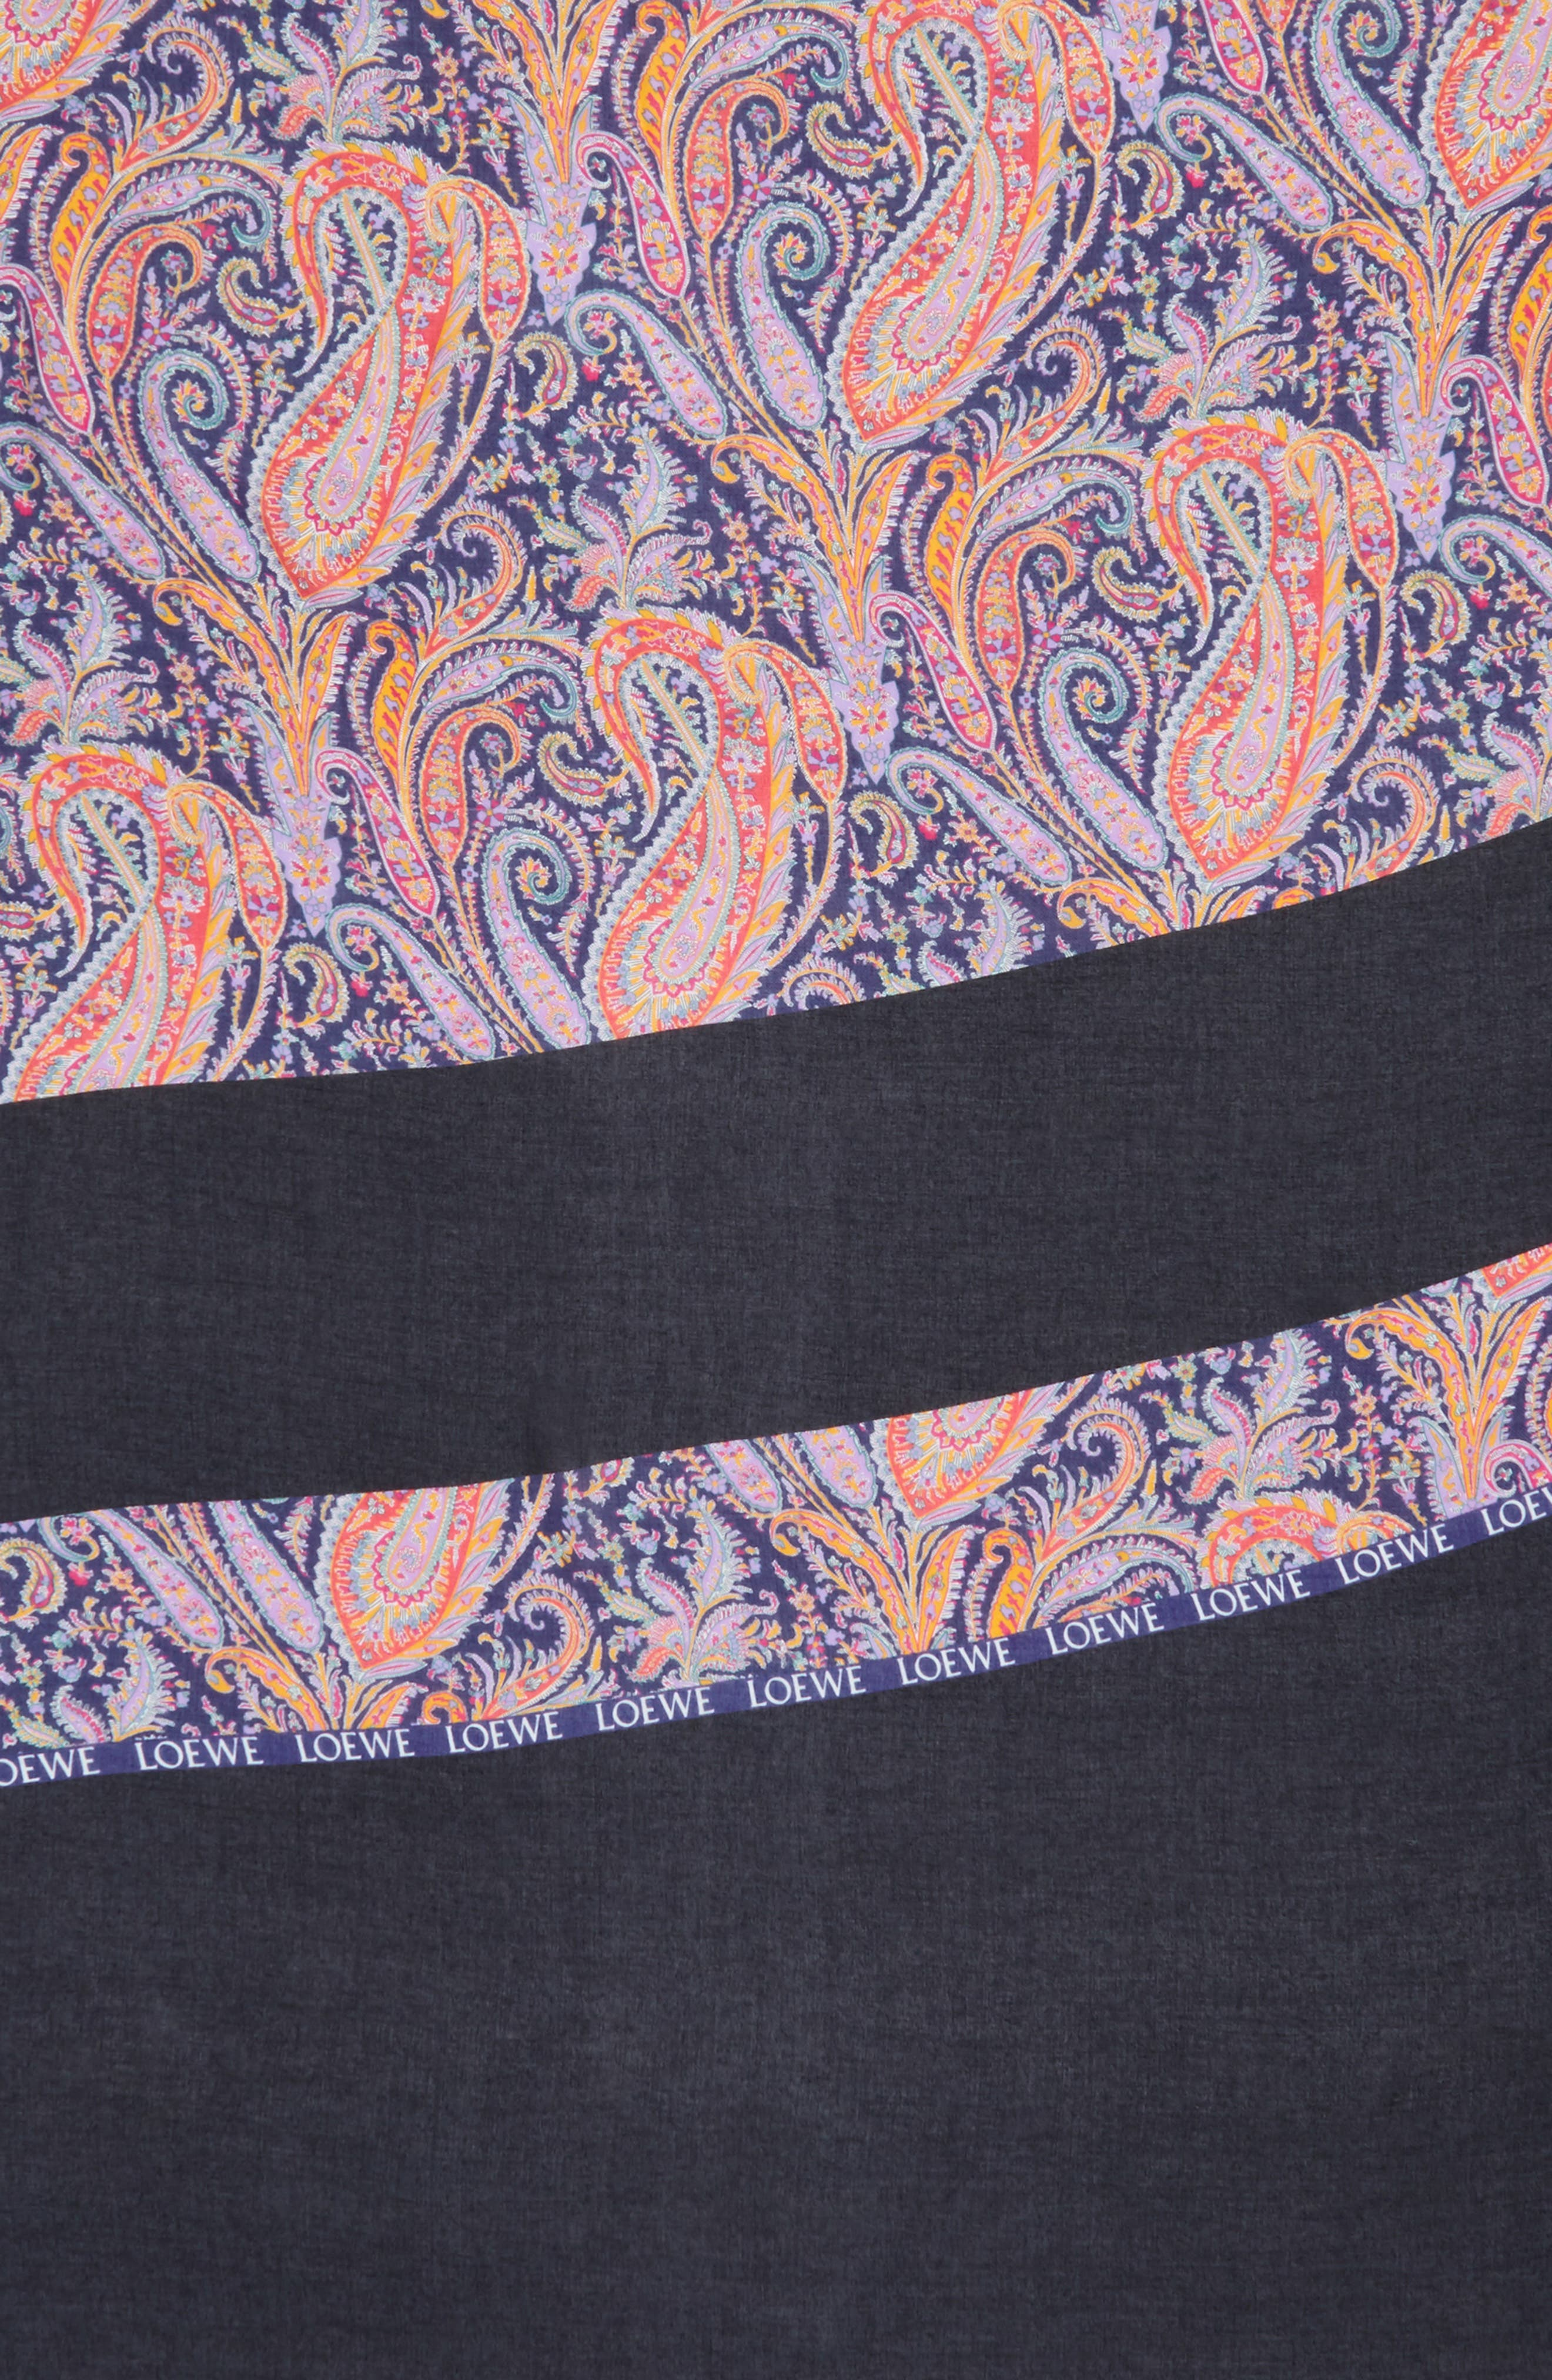 LOEWE,                             Liberty Stripe Paisley Scarf,                             Alternate thumbnail 4, color,                             MULTICOLOR